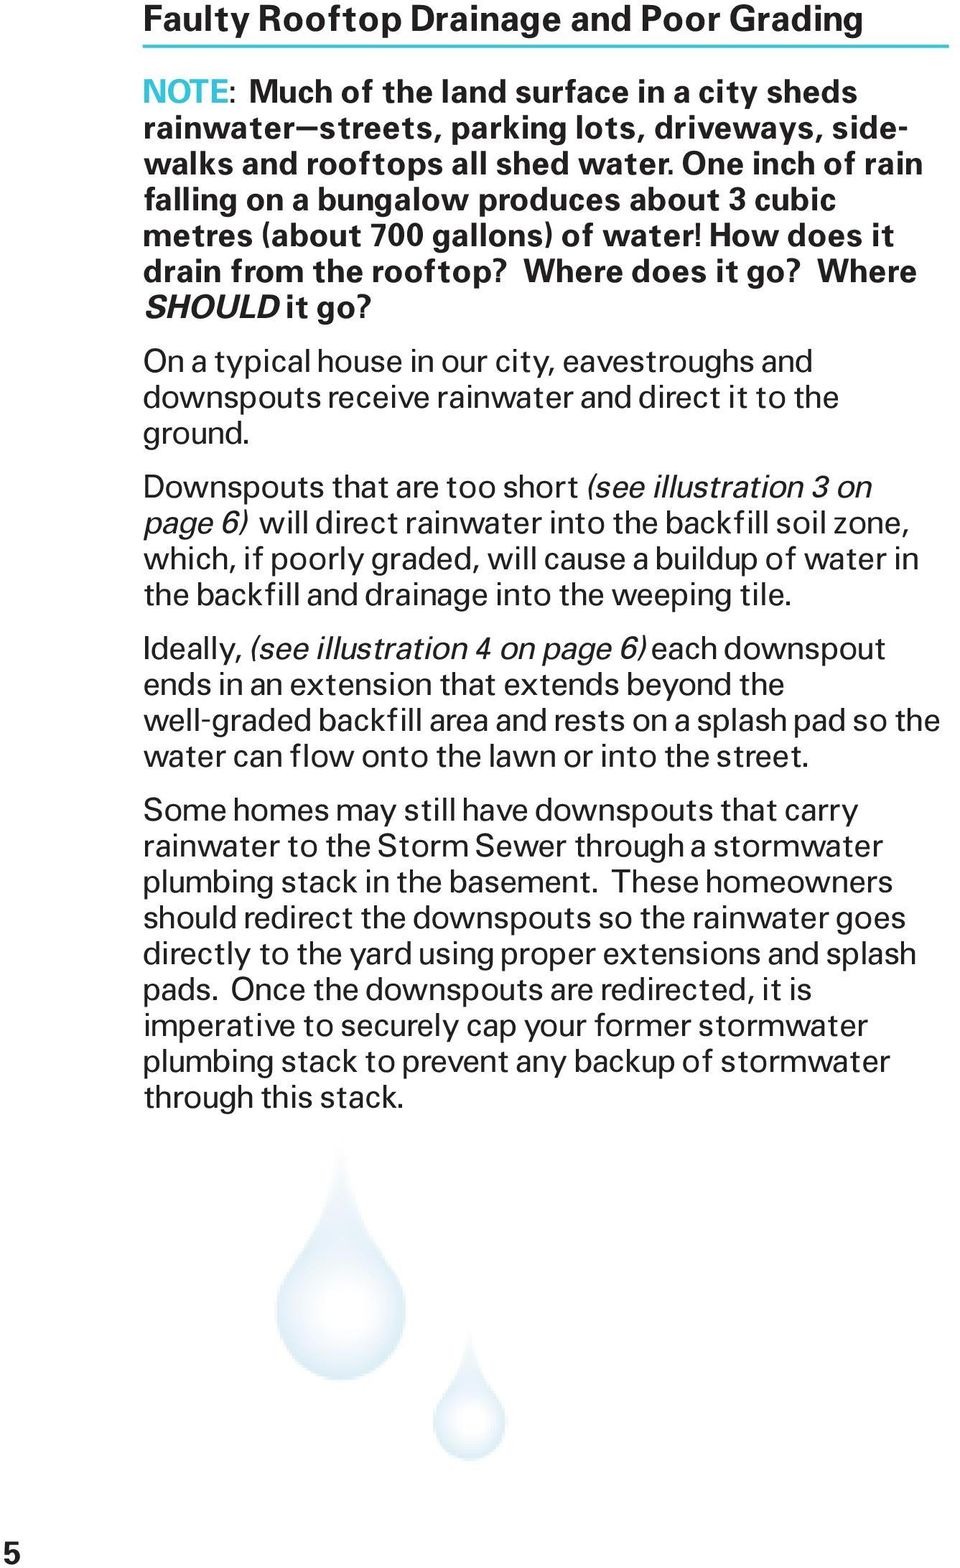 On a typical house in our city, eavestroughs and downspouts receive rainwater and direct it to the ground.